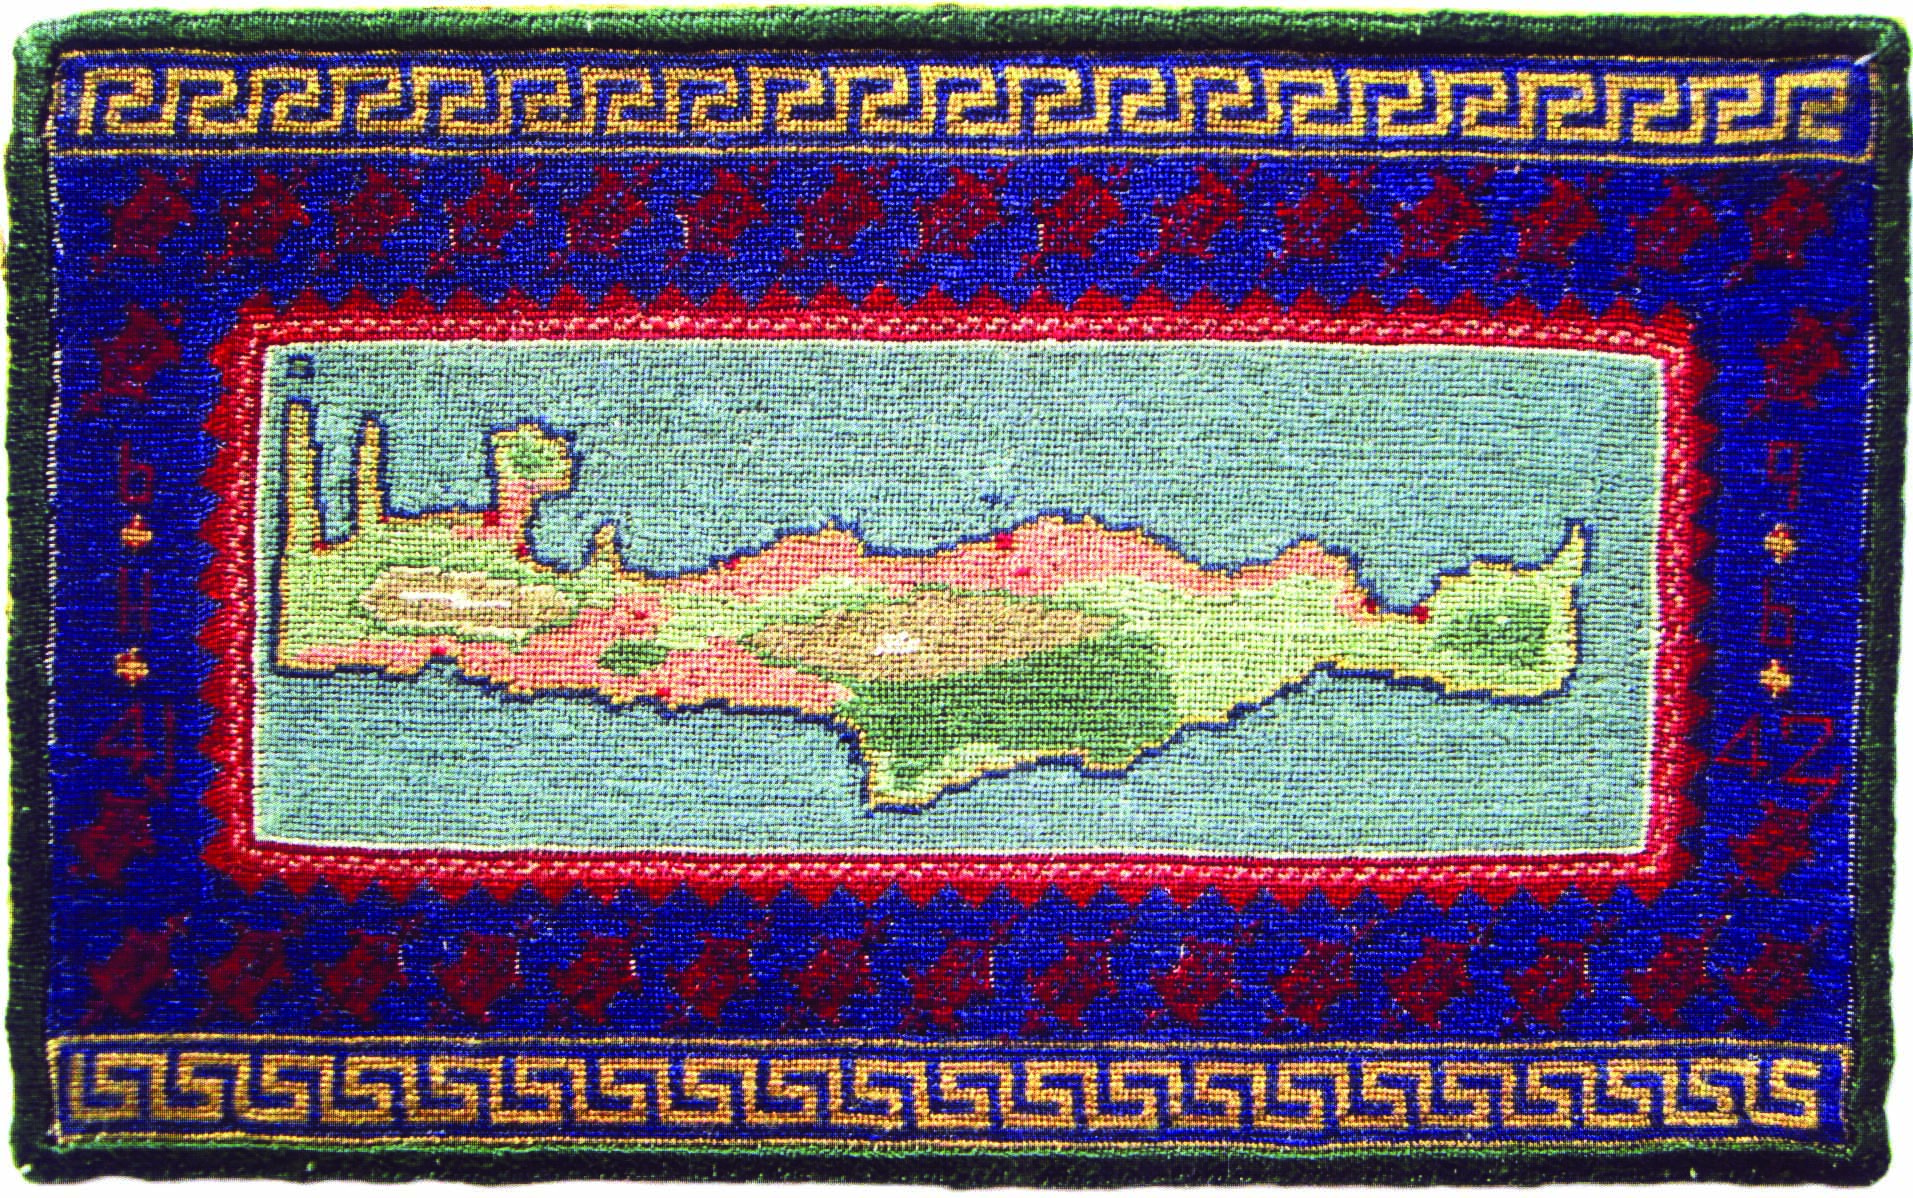 10 Map of Crete embroidery